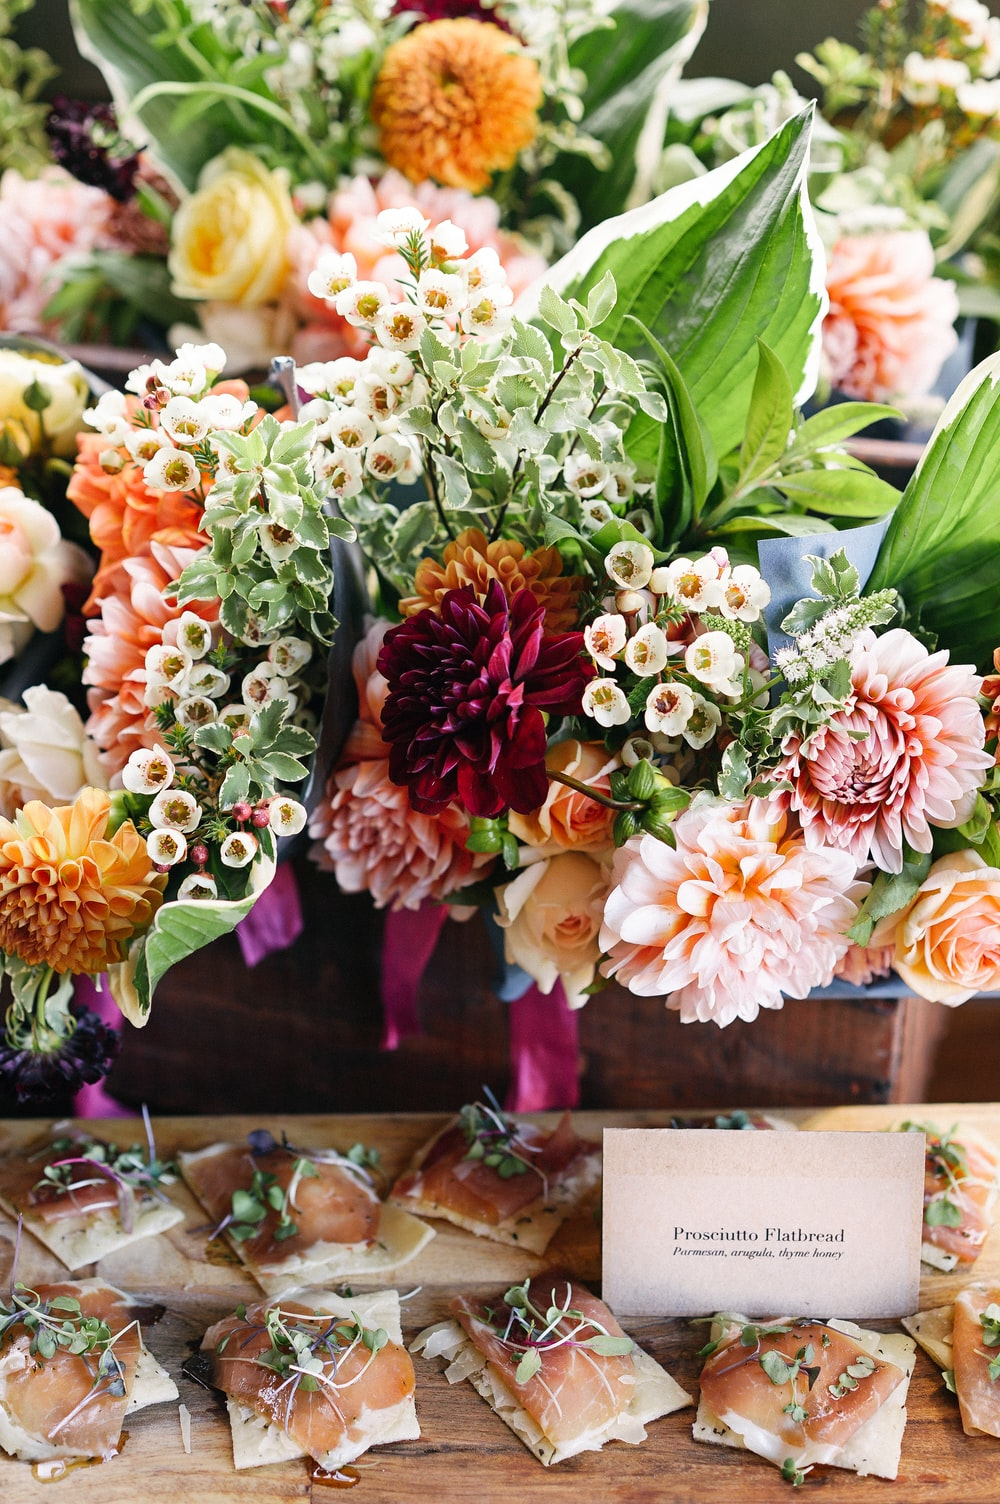 top view photo of assorted-color flowers